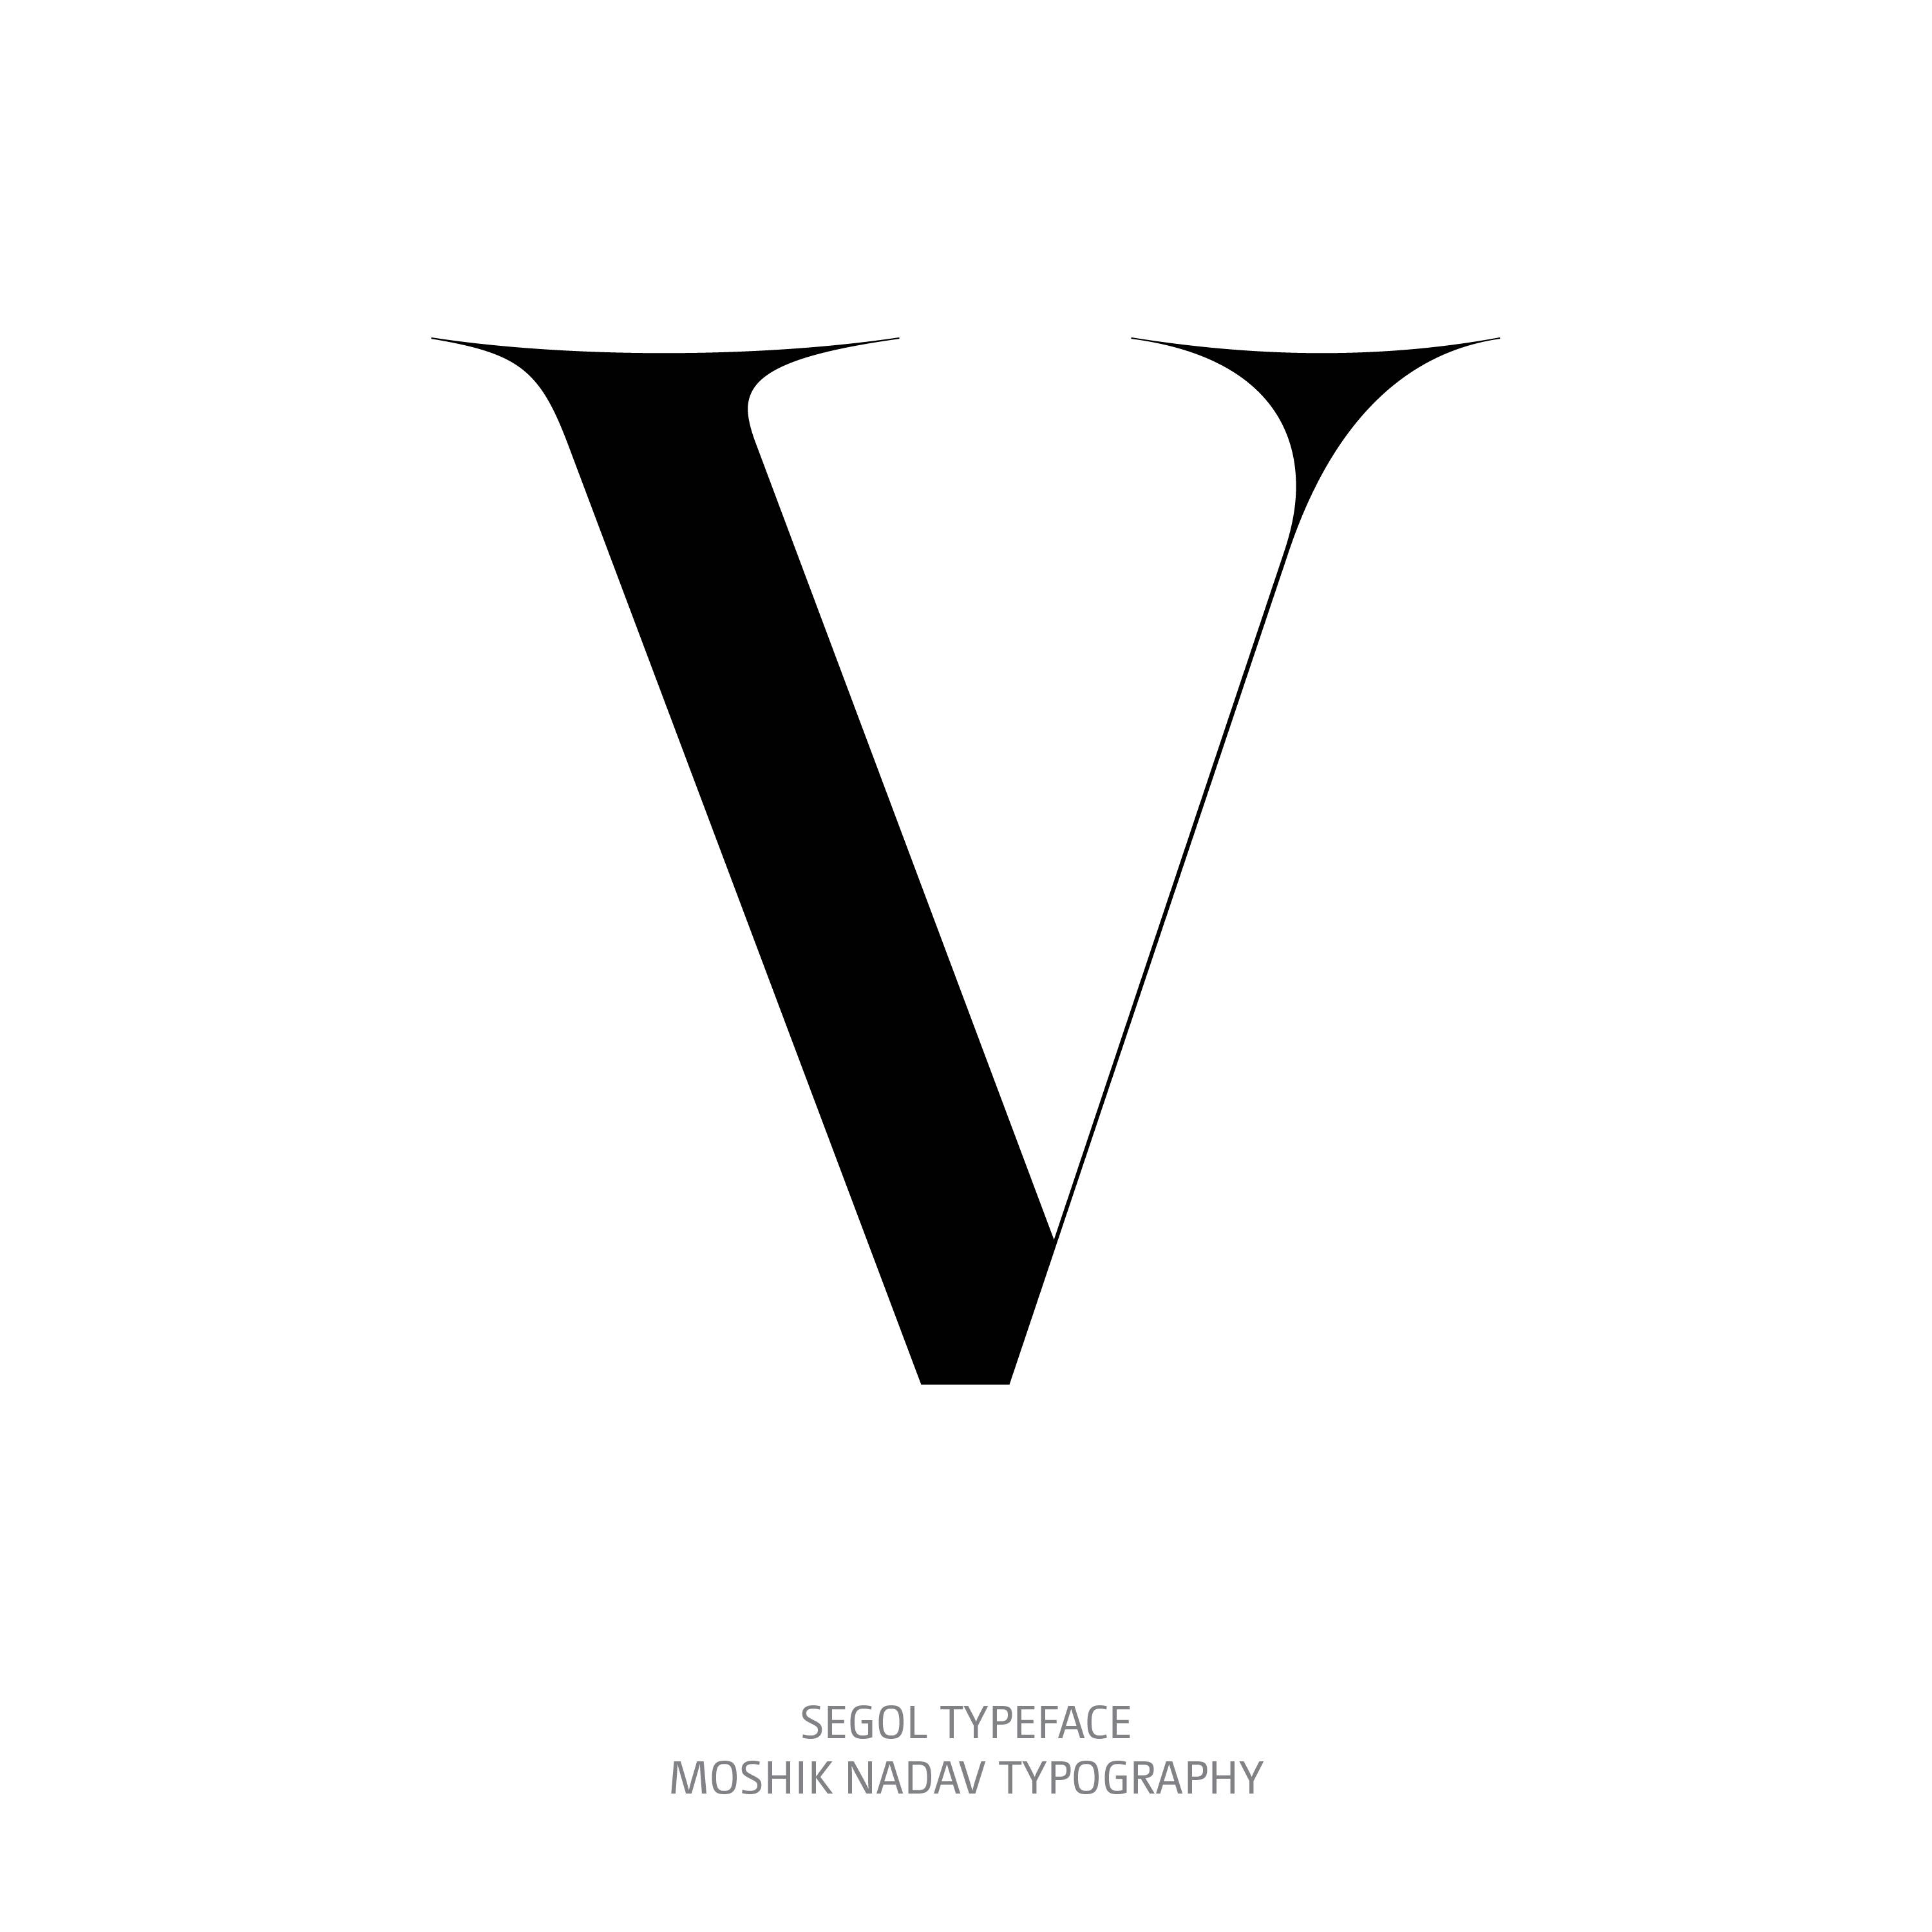 Segol Typeface V The Ultimate Font For Fashion Typography and sexy logos